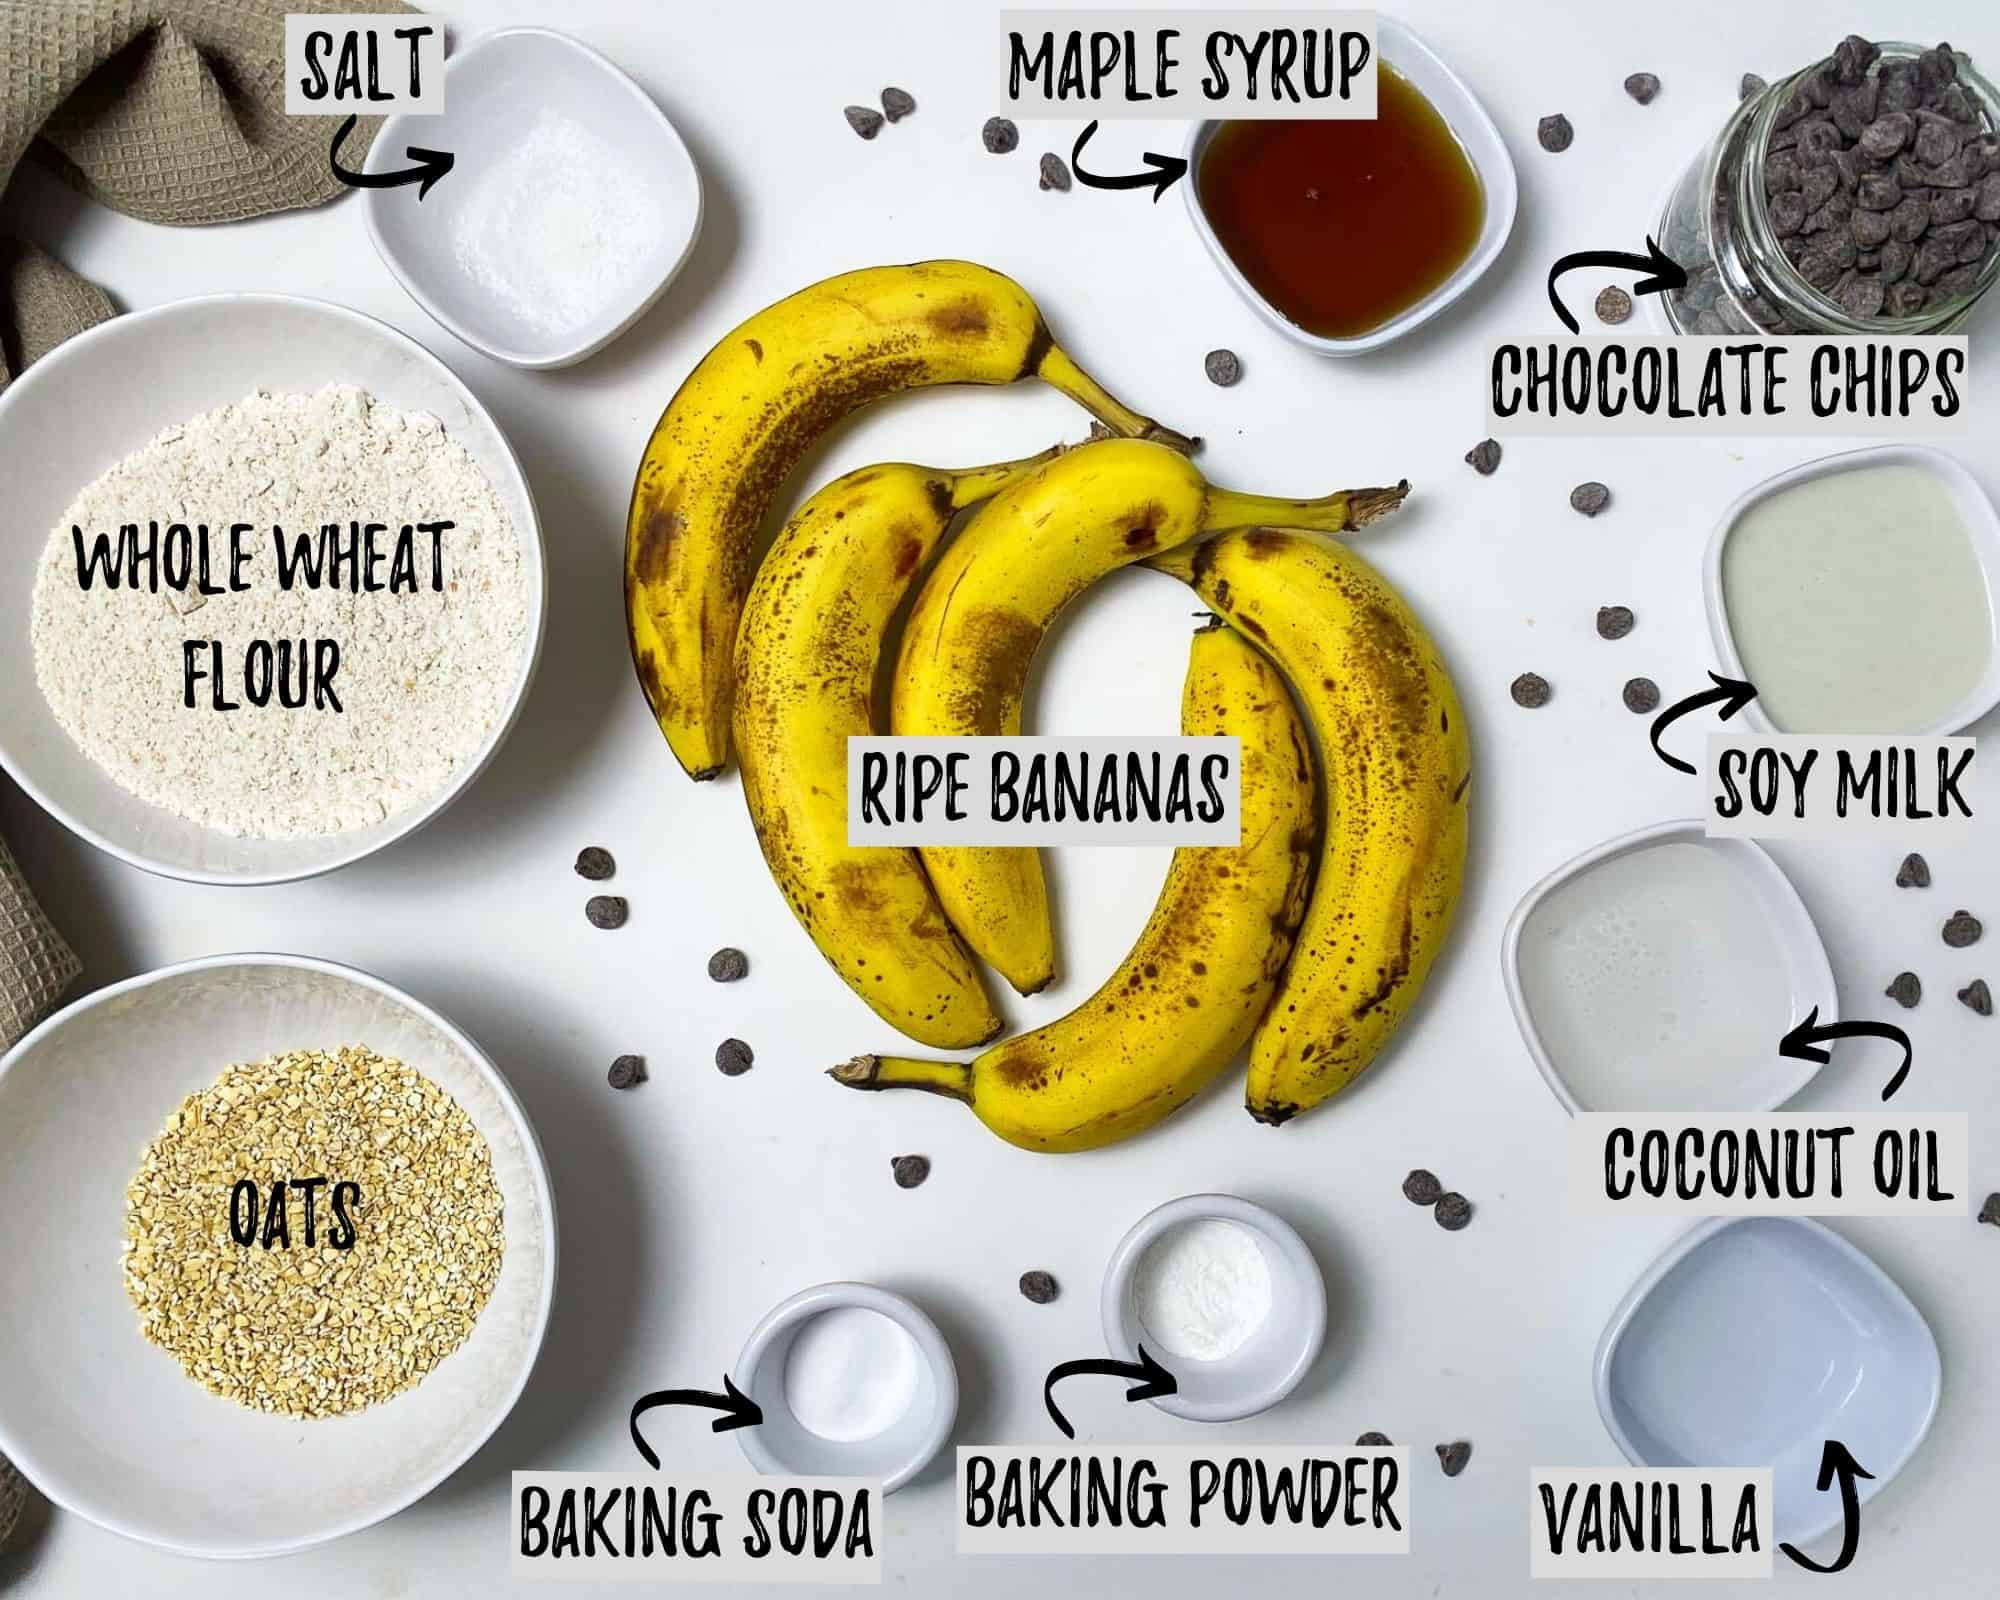 bananas, bowl of flour, bowl of oats, baking powder, baking soda, maple syrup, vanilla, milk, oil, salt